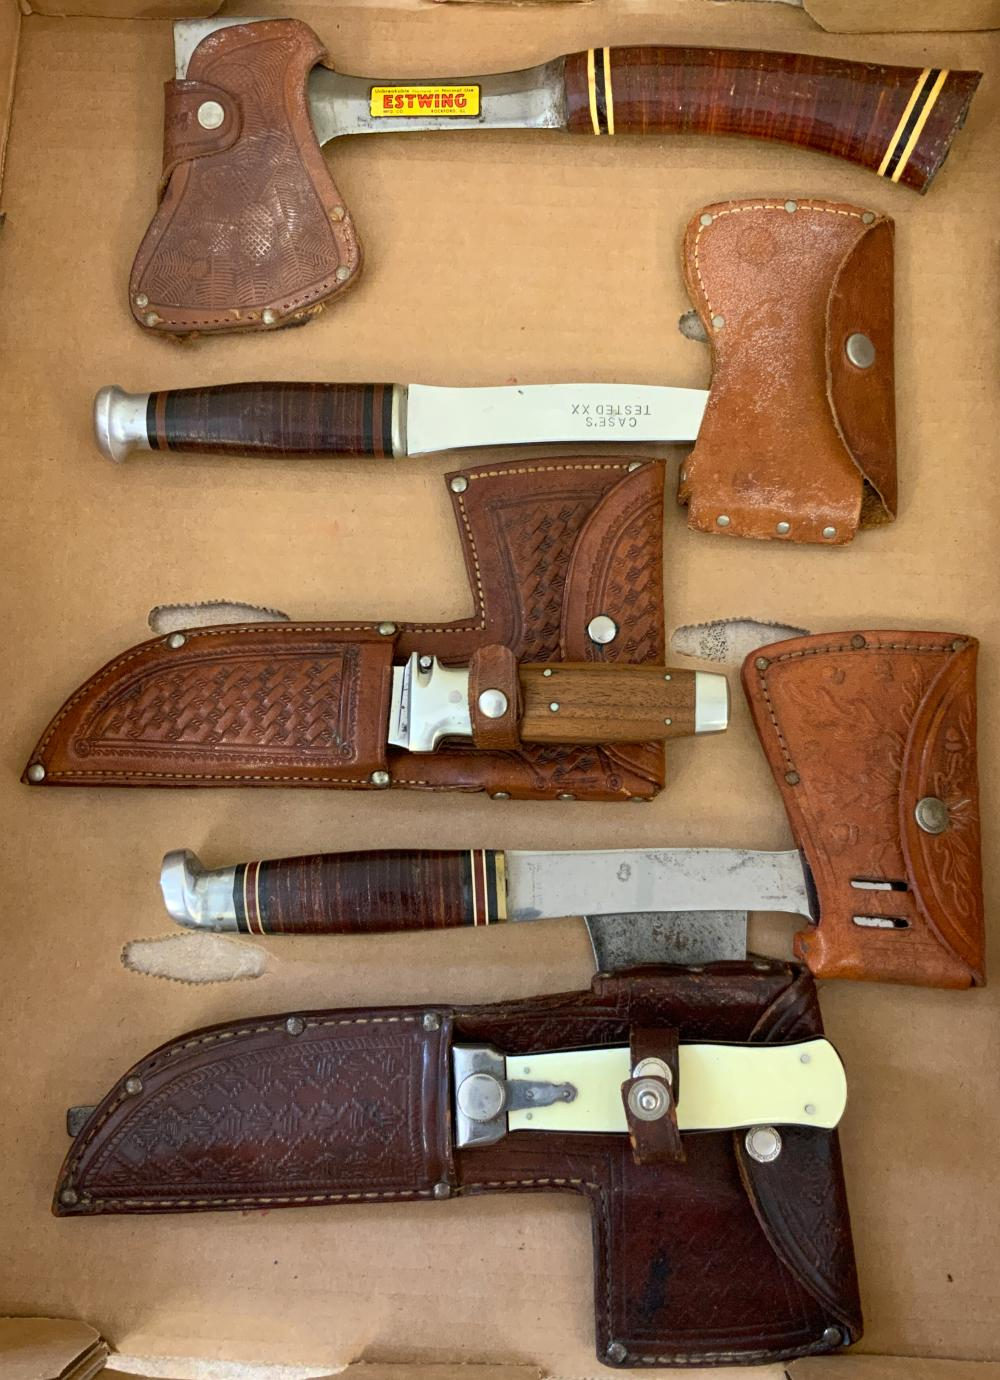 Hatchets, Knife Sets and Military Knives